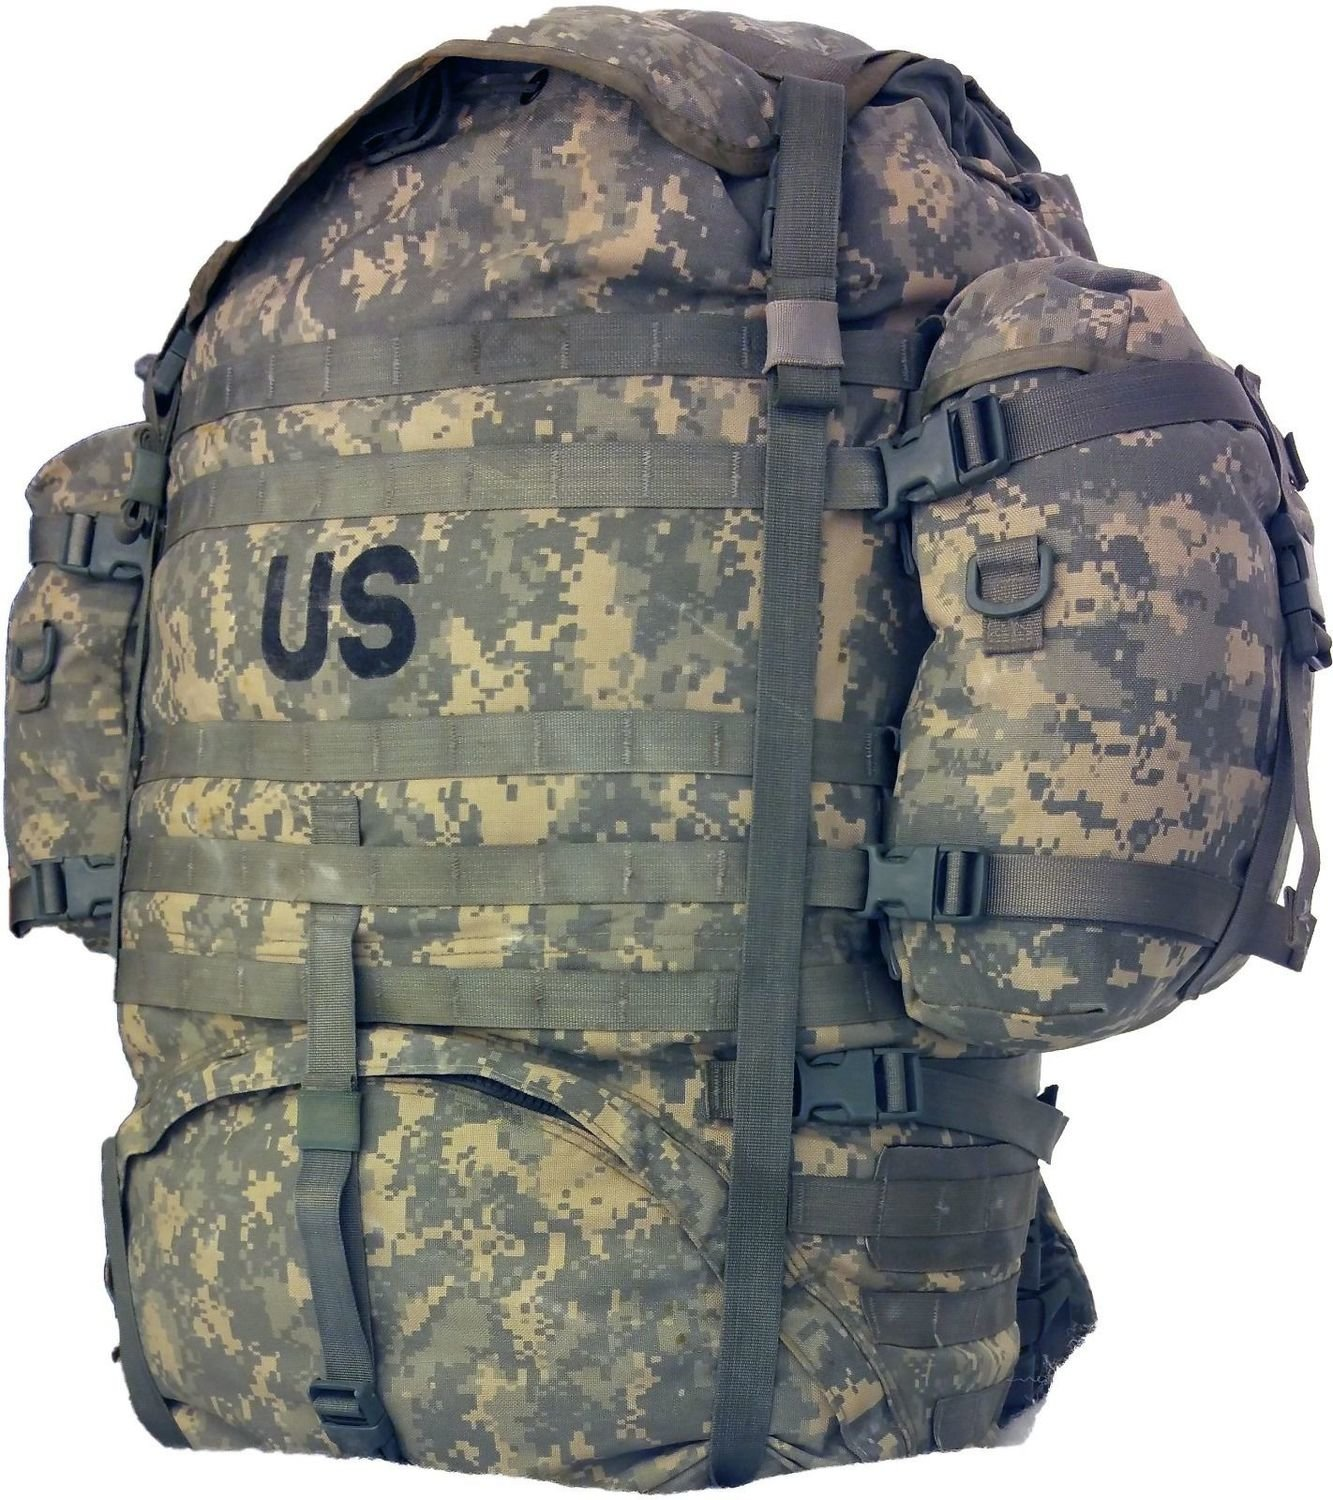 US Military Army Rucksack Backpack MOLLE II Large Field Pack - Used, Good Condition